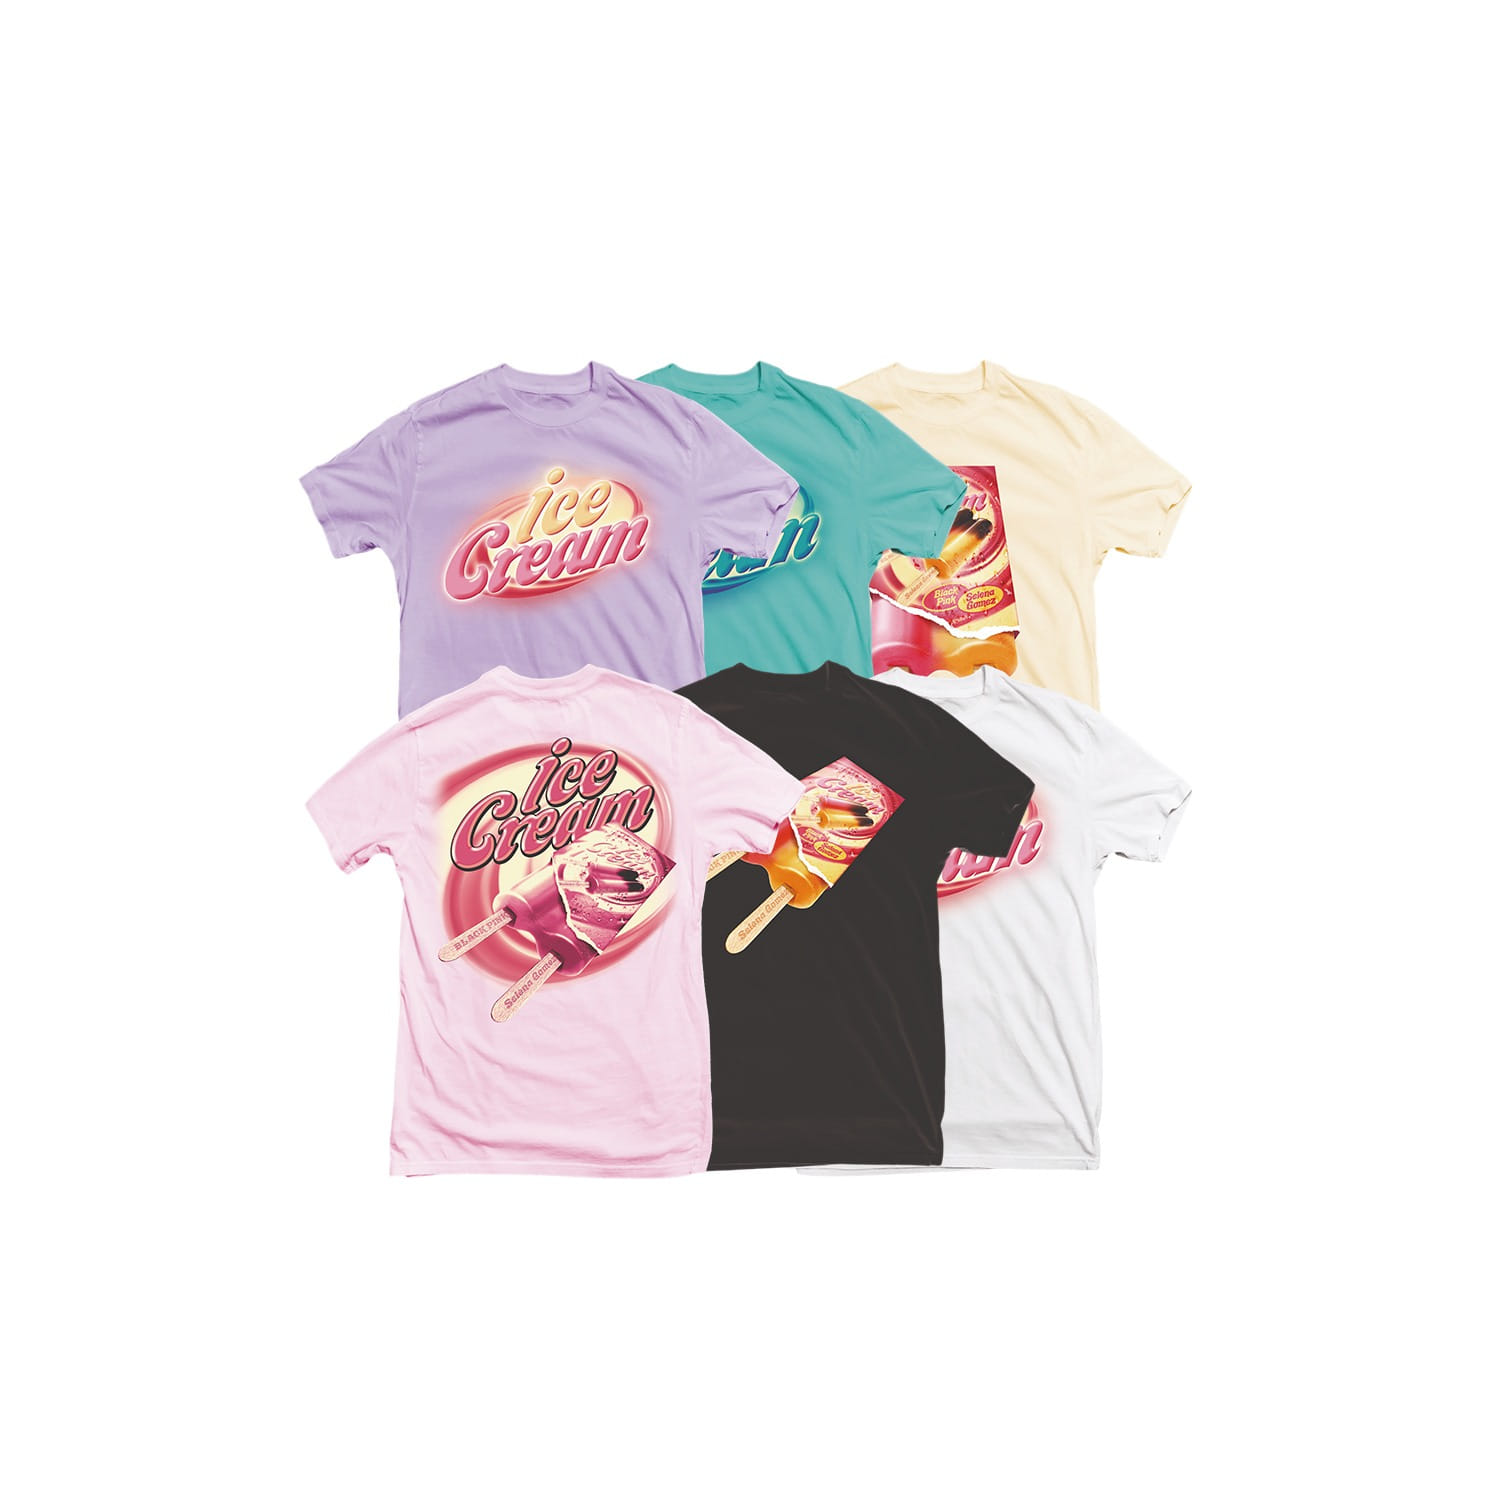 [SOPOOOM] BLACKPINK ICECREAM T-SHIRTS_TYPE 1